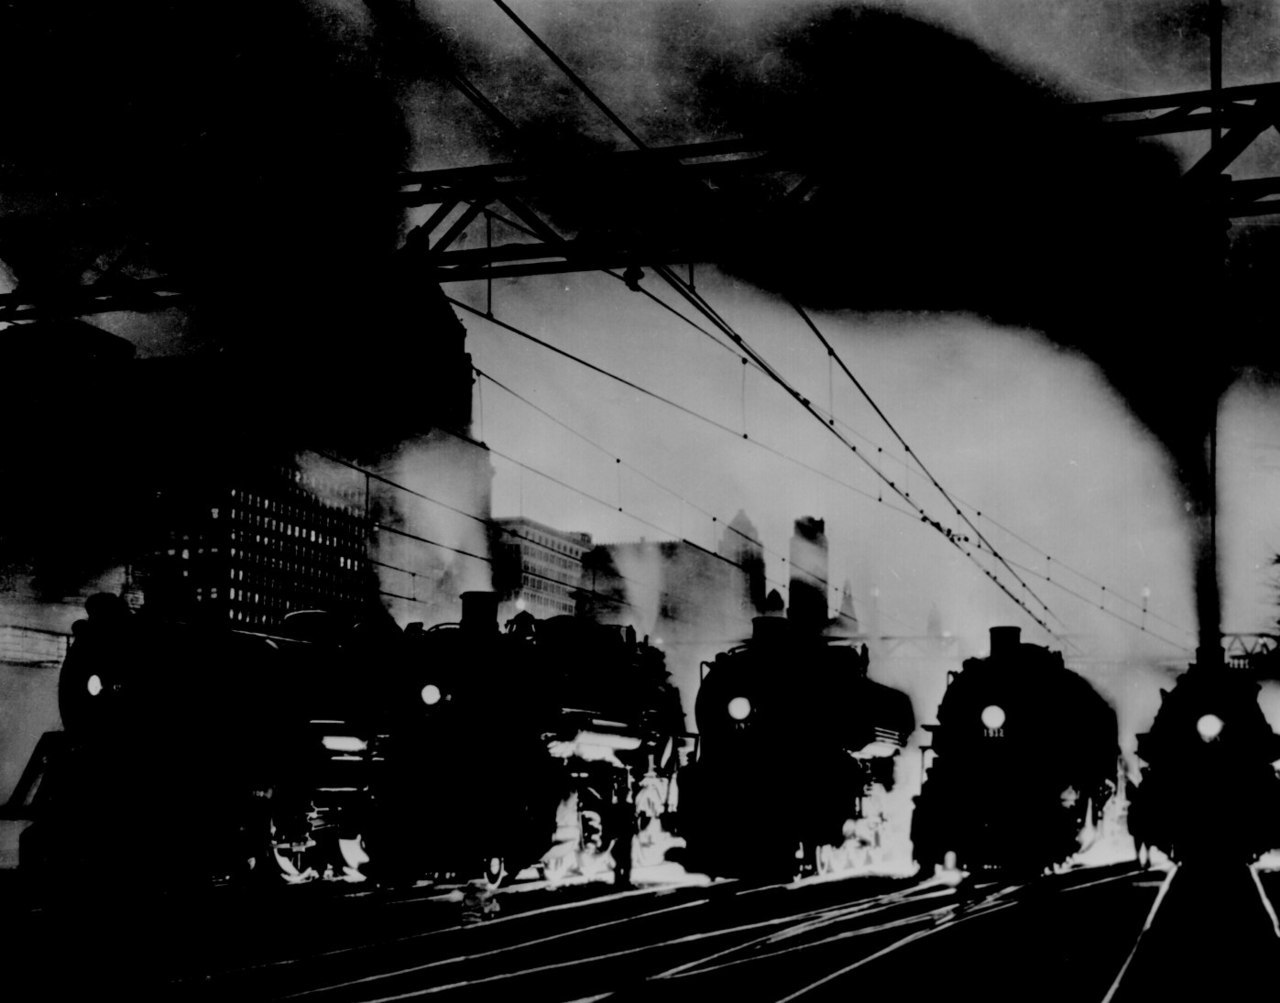 Five steam locomotives, side by side, outbound from Chicago at dusk, ca. 1940. 208-PP-24J-7.